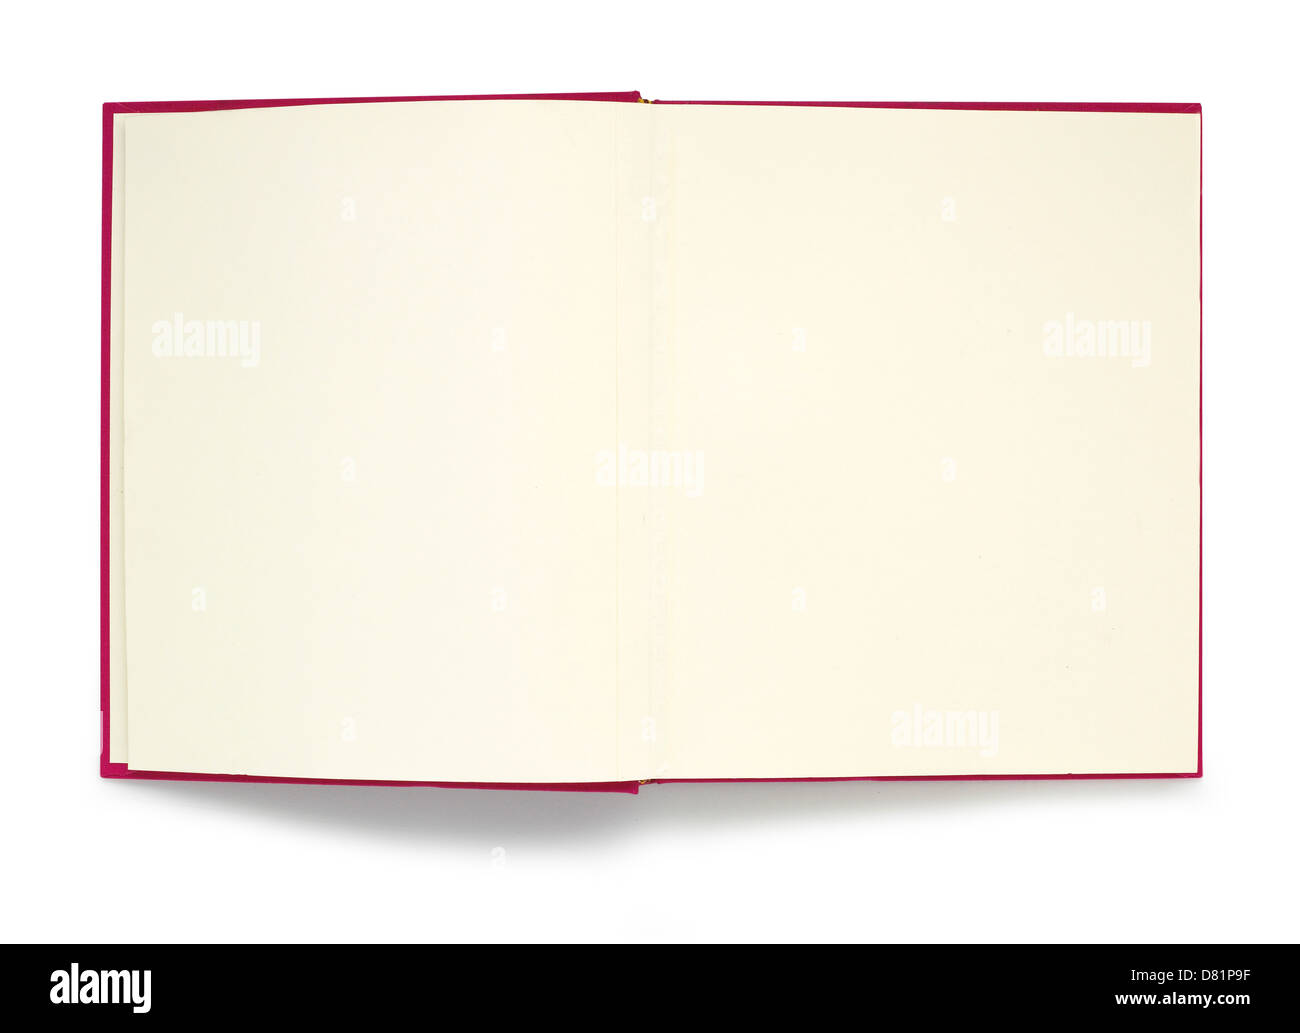 Open red book with empty plain white pages cut out onto a white background - Stock Image